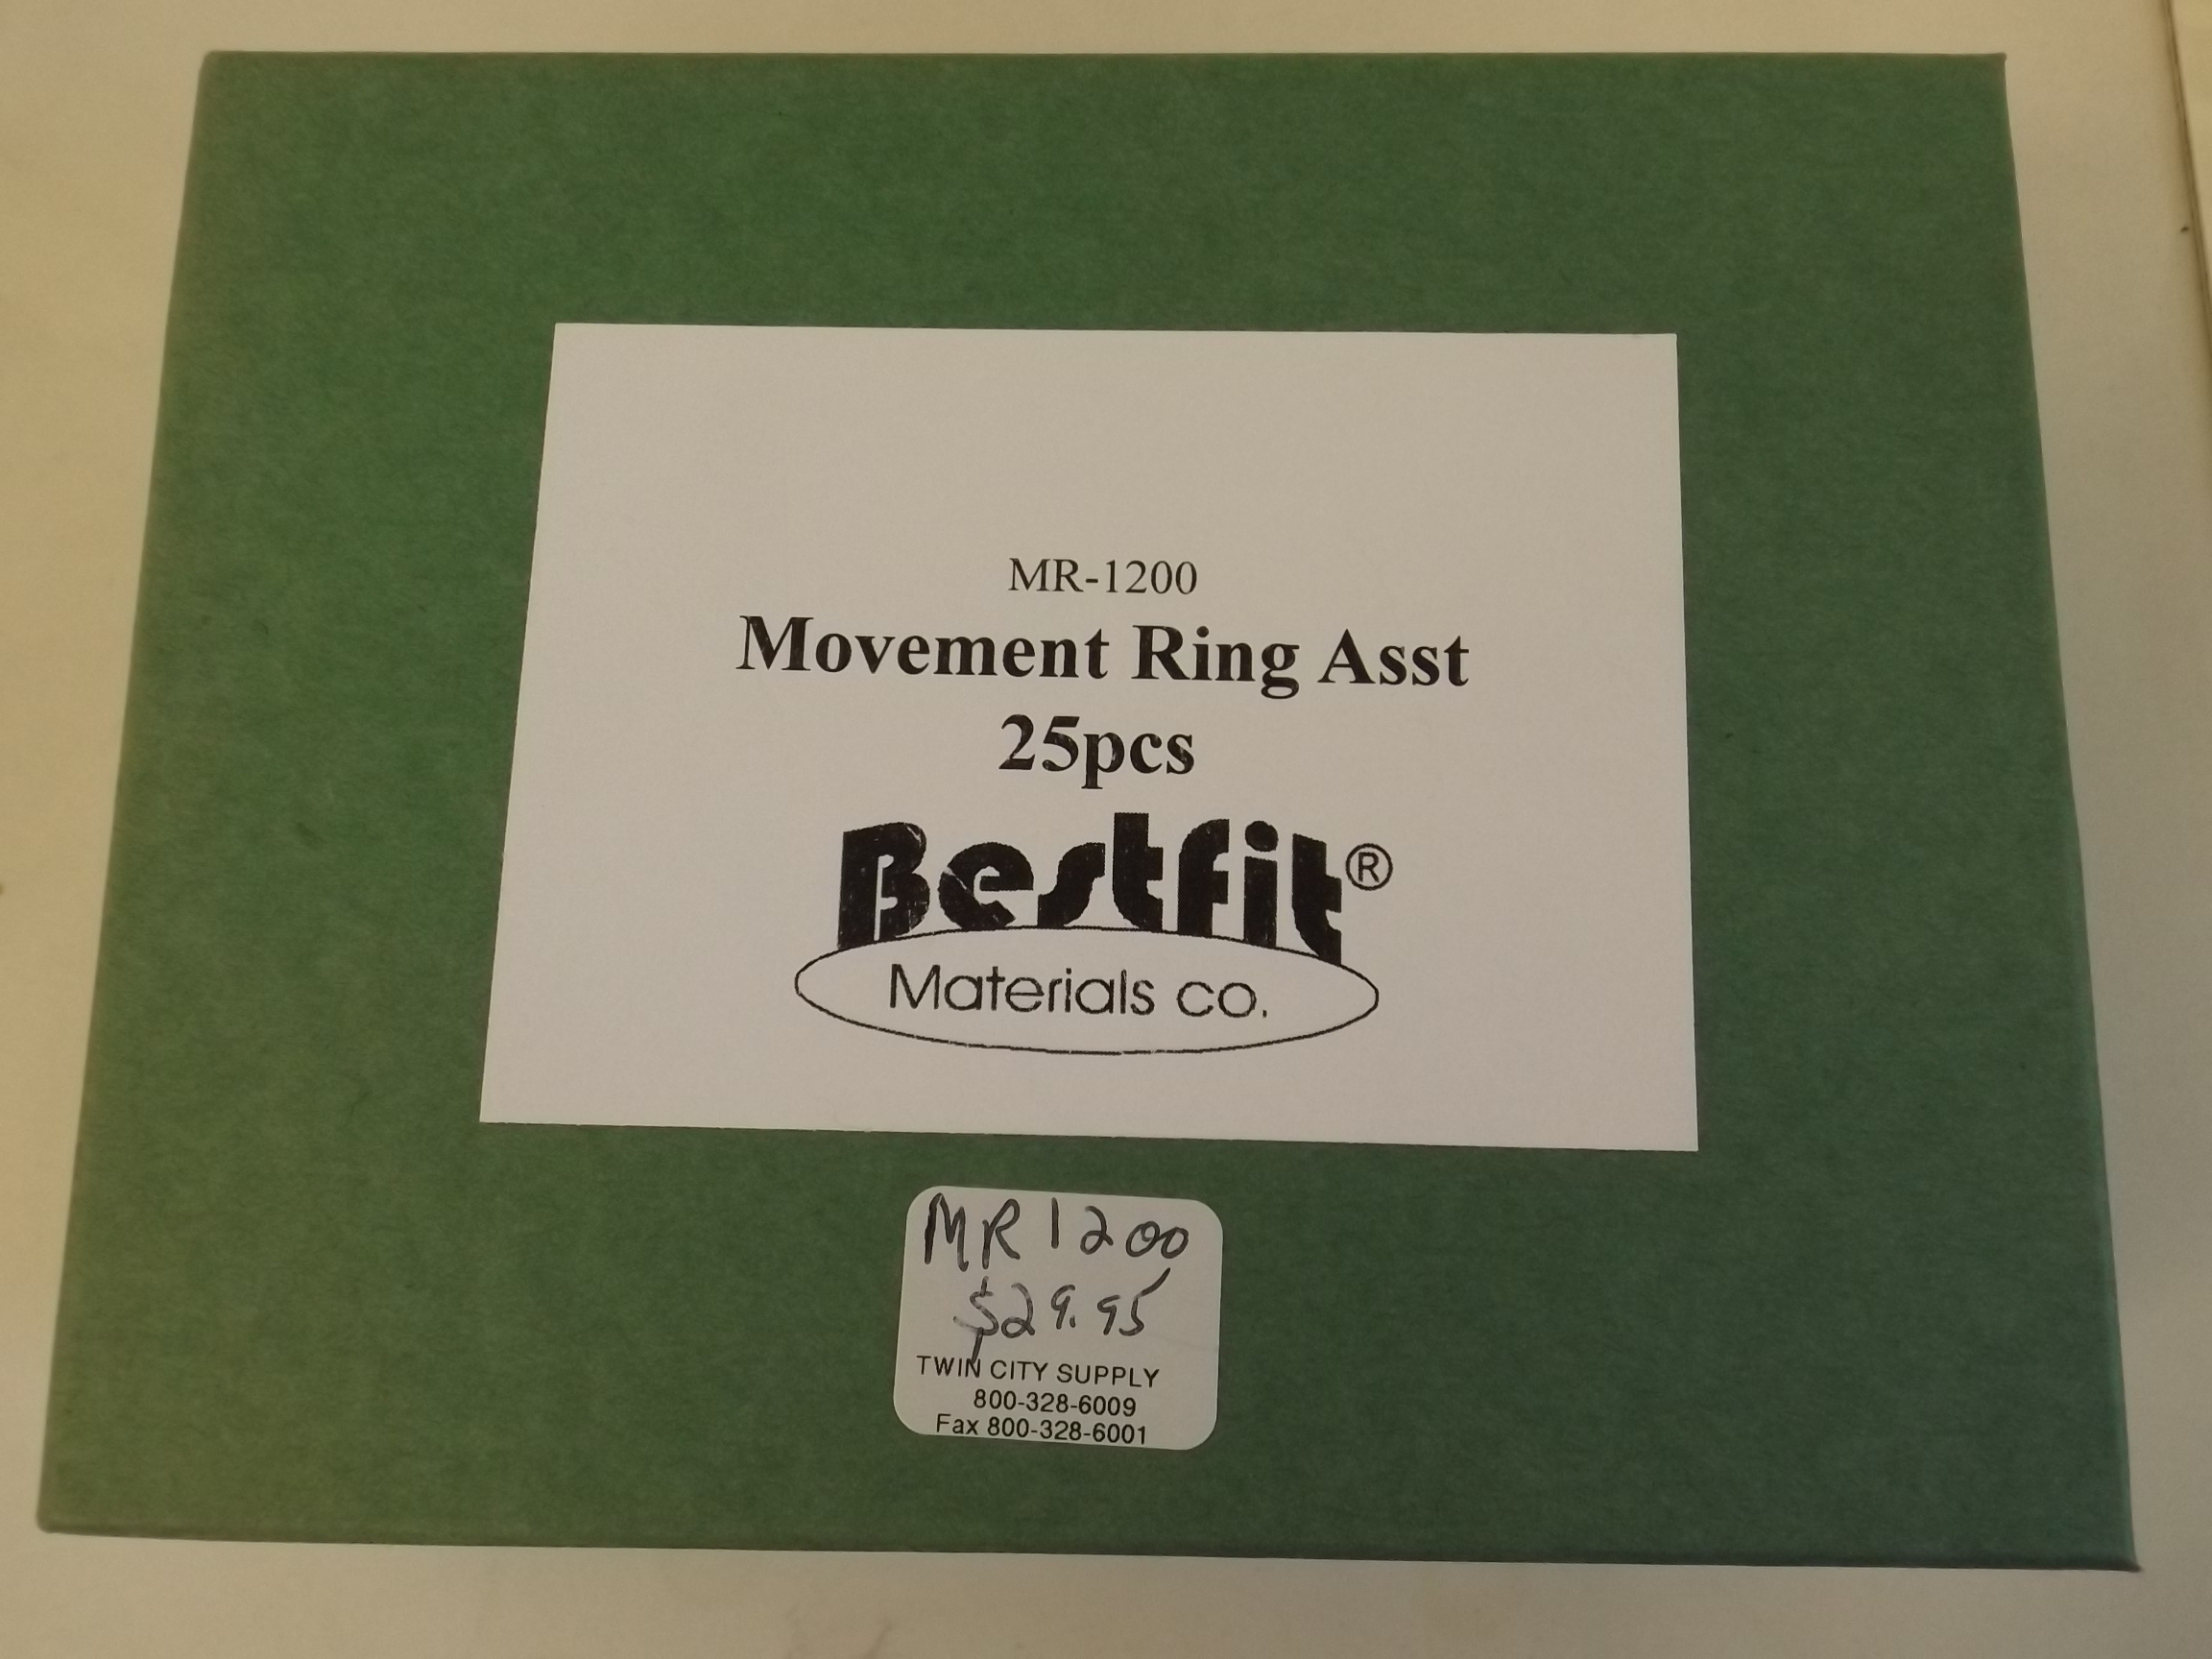 MR1200 New! Movement Ring Assortment 25 pieces from Bestfit